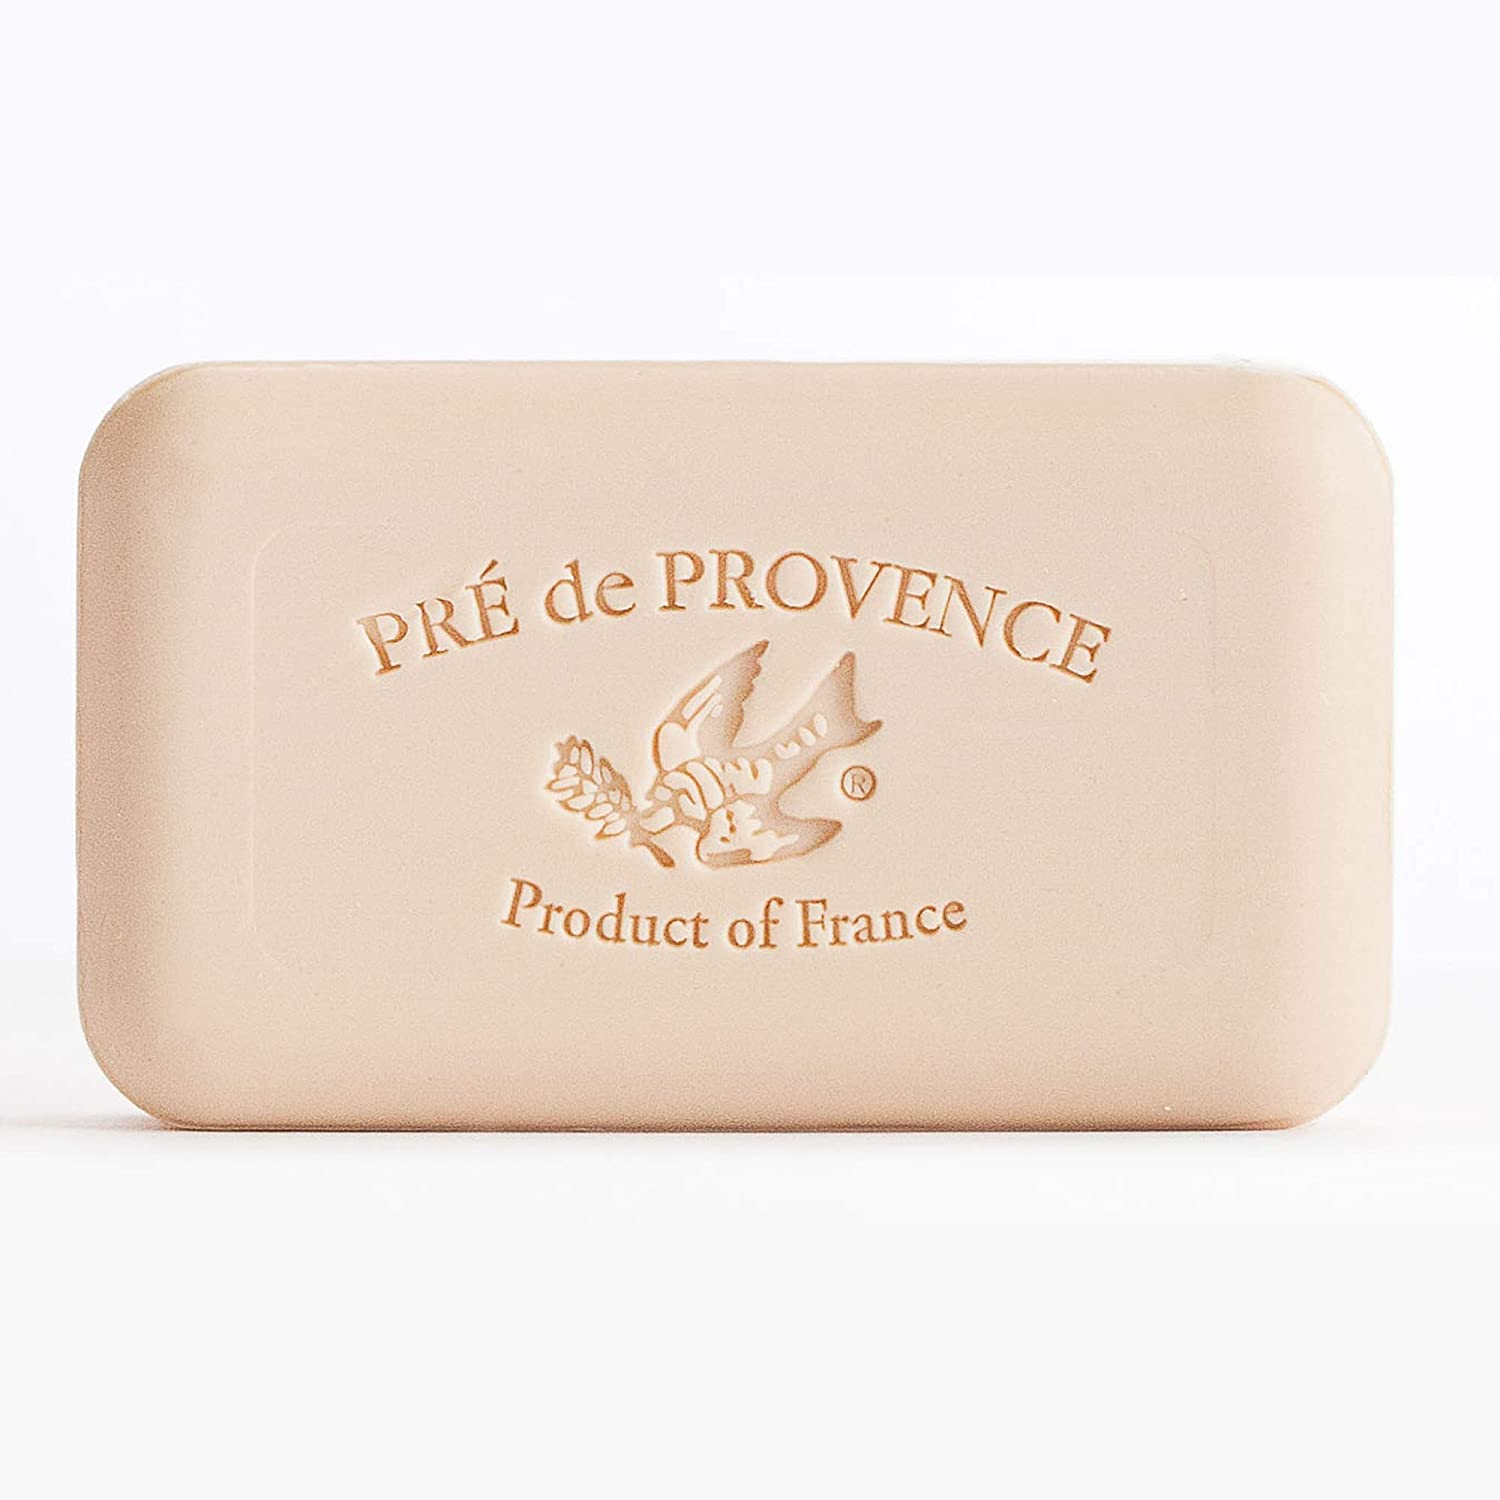 Pre de Provence Artisanal French Soap Bar Enriched with Shea Butter, Coconut, 150 Gram